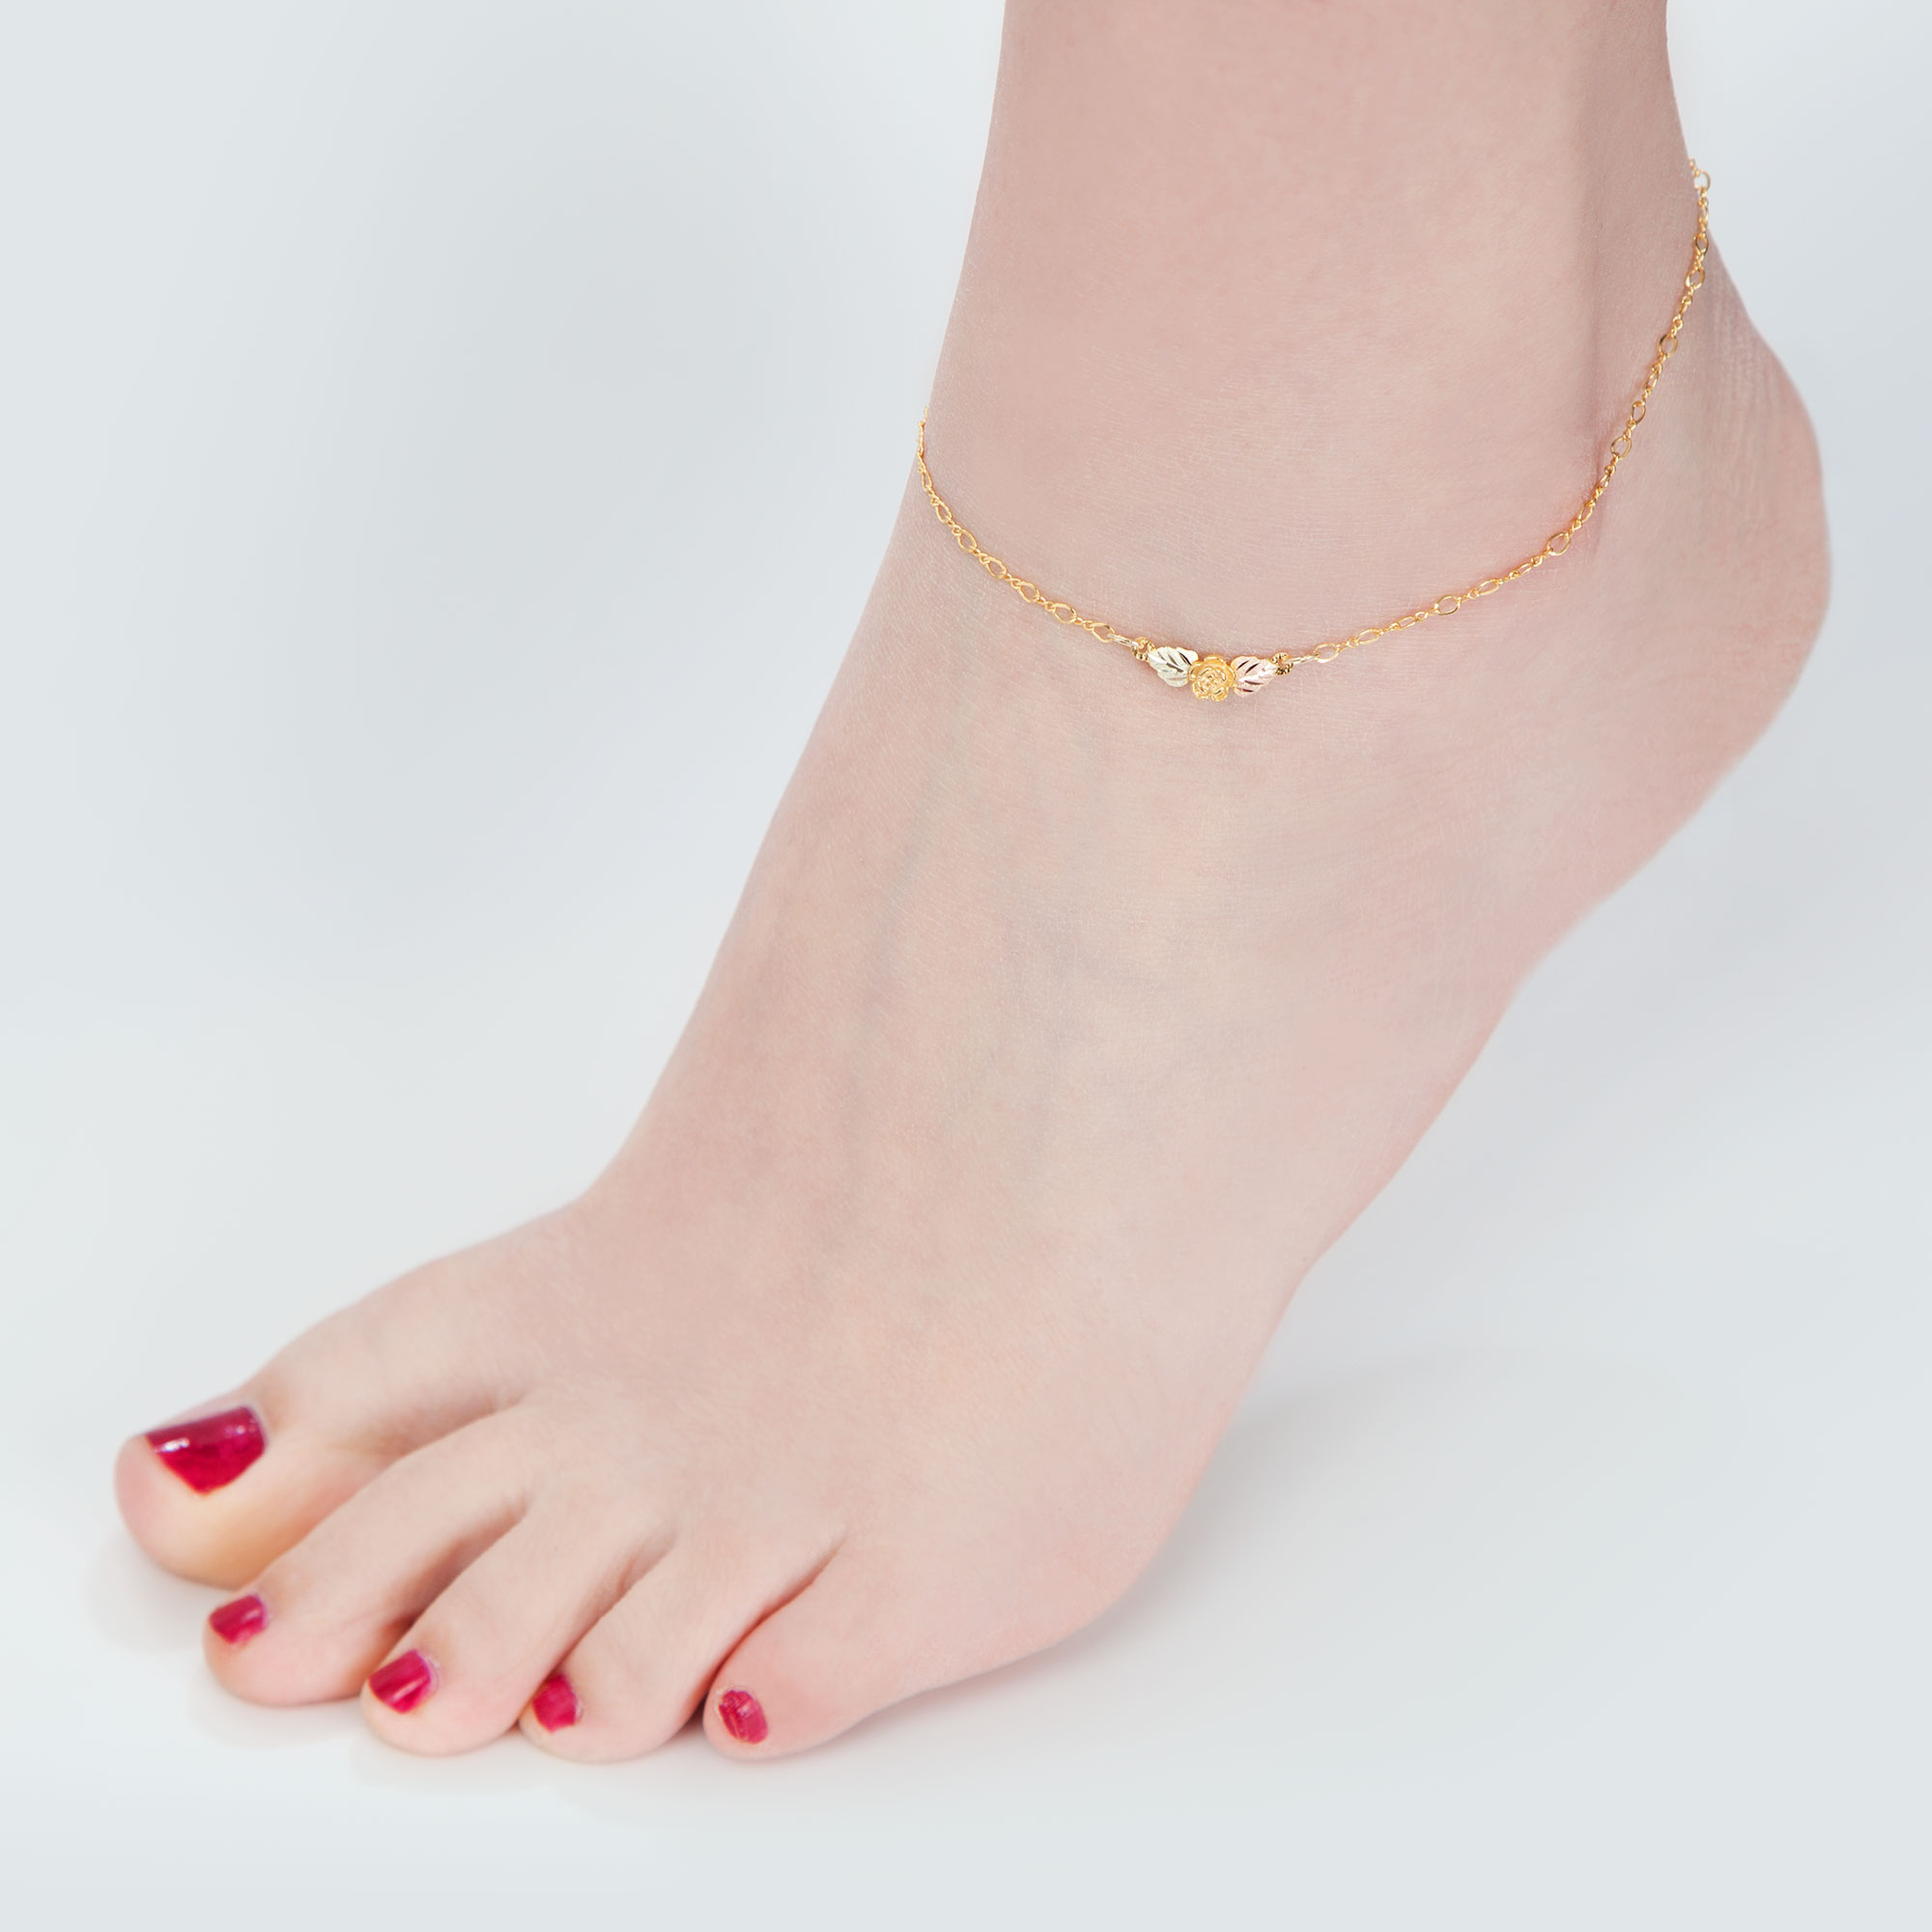 anklet in diamond designer lyst bezel metallic gold mateo yellow bracelet gallery ankle jewelry